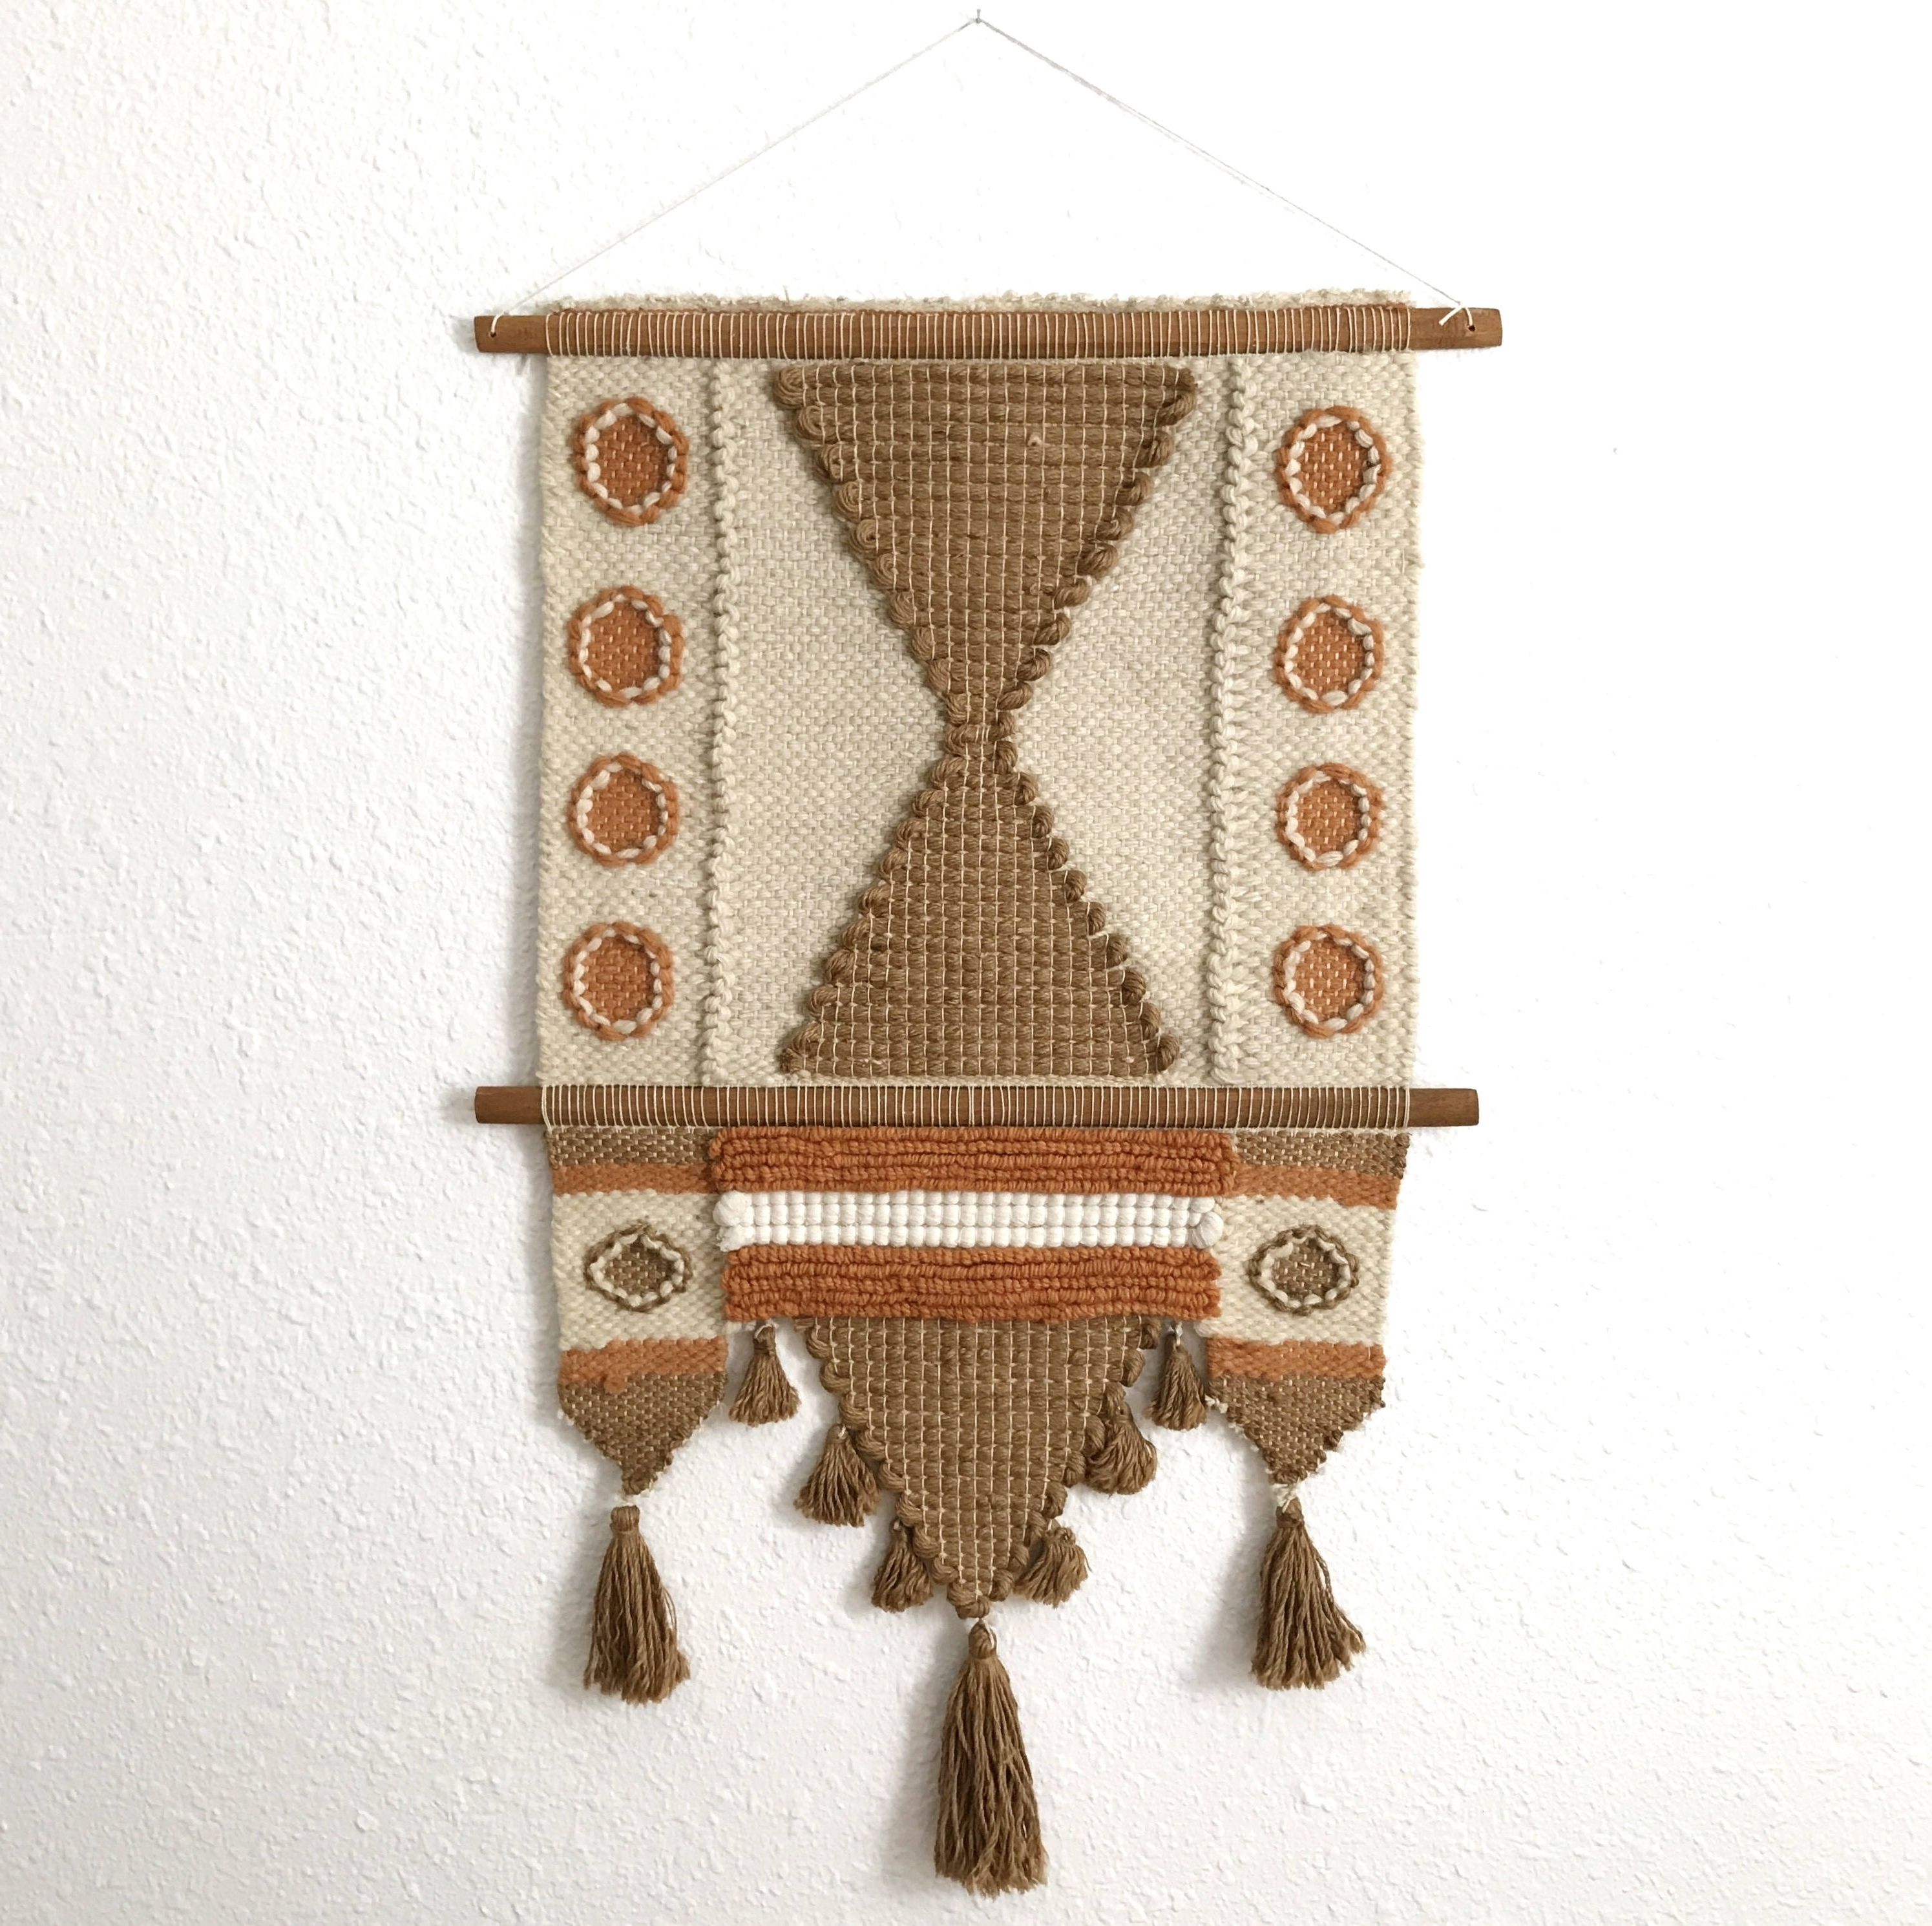 Well Known Mid Century Textile Wall Art Inside Vintage Don Freedman Wall Hanging / Vintage Wall Weaving / Jute (View 15 of 15)